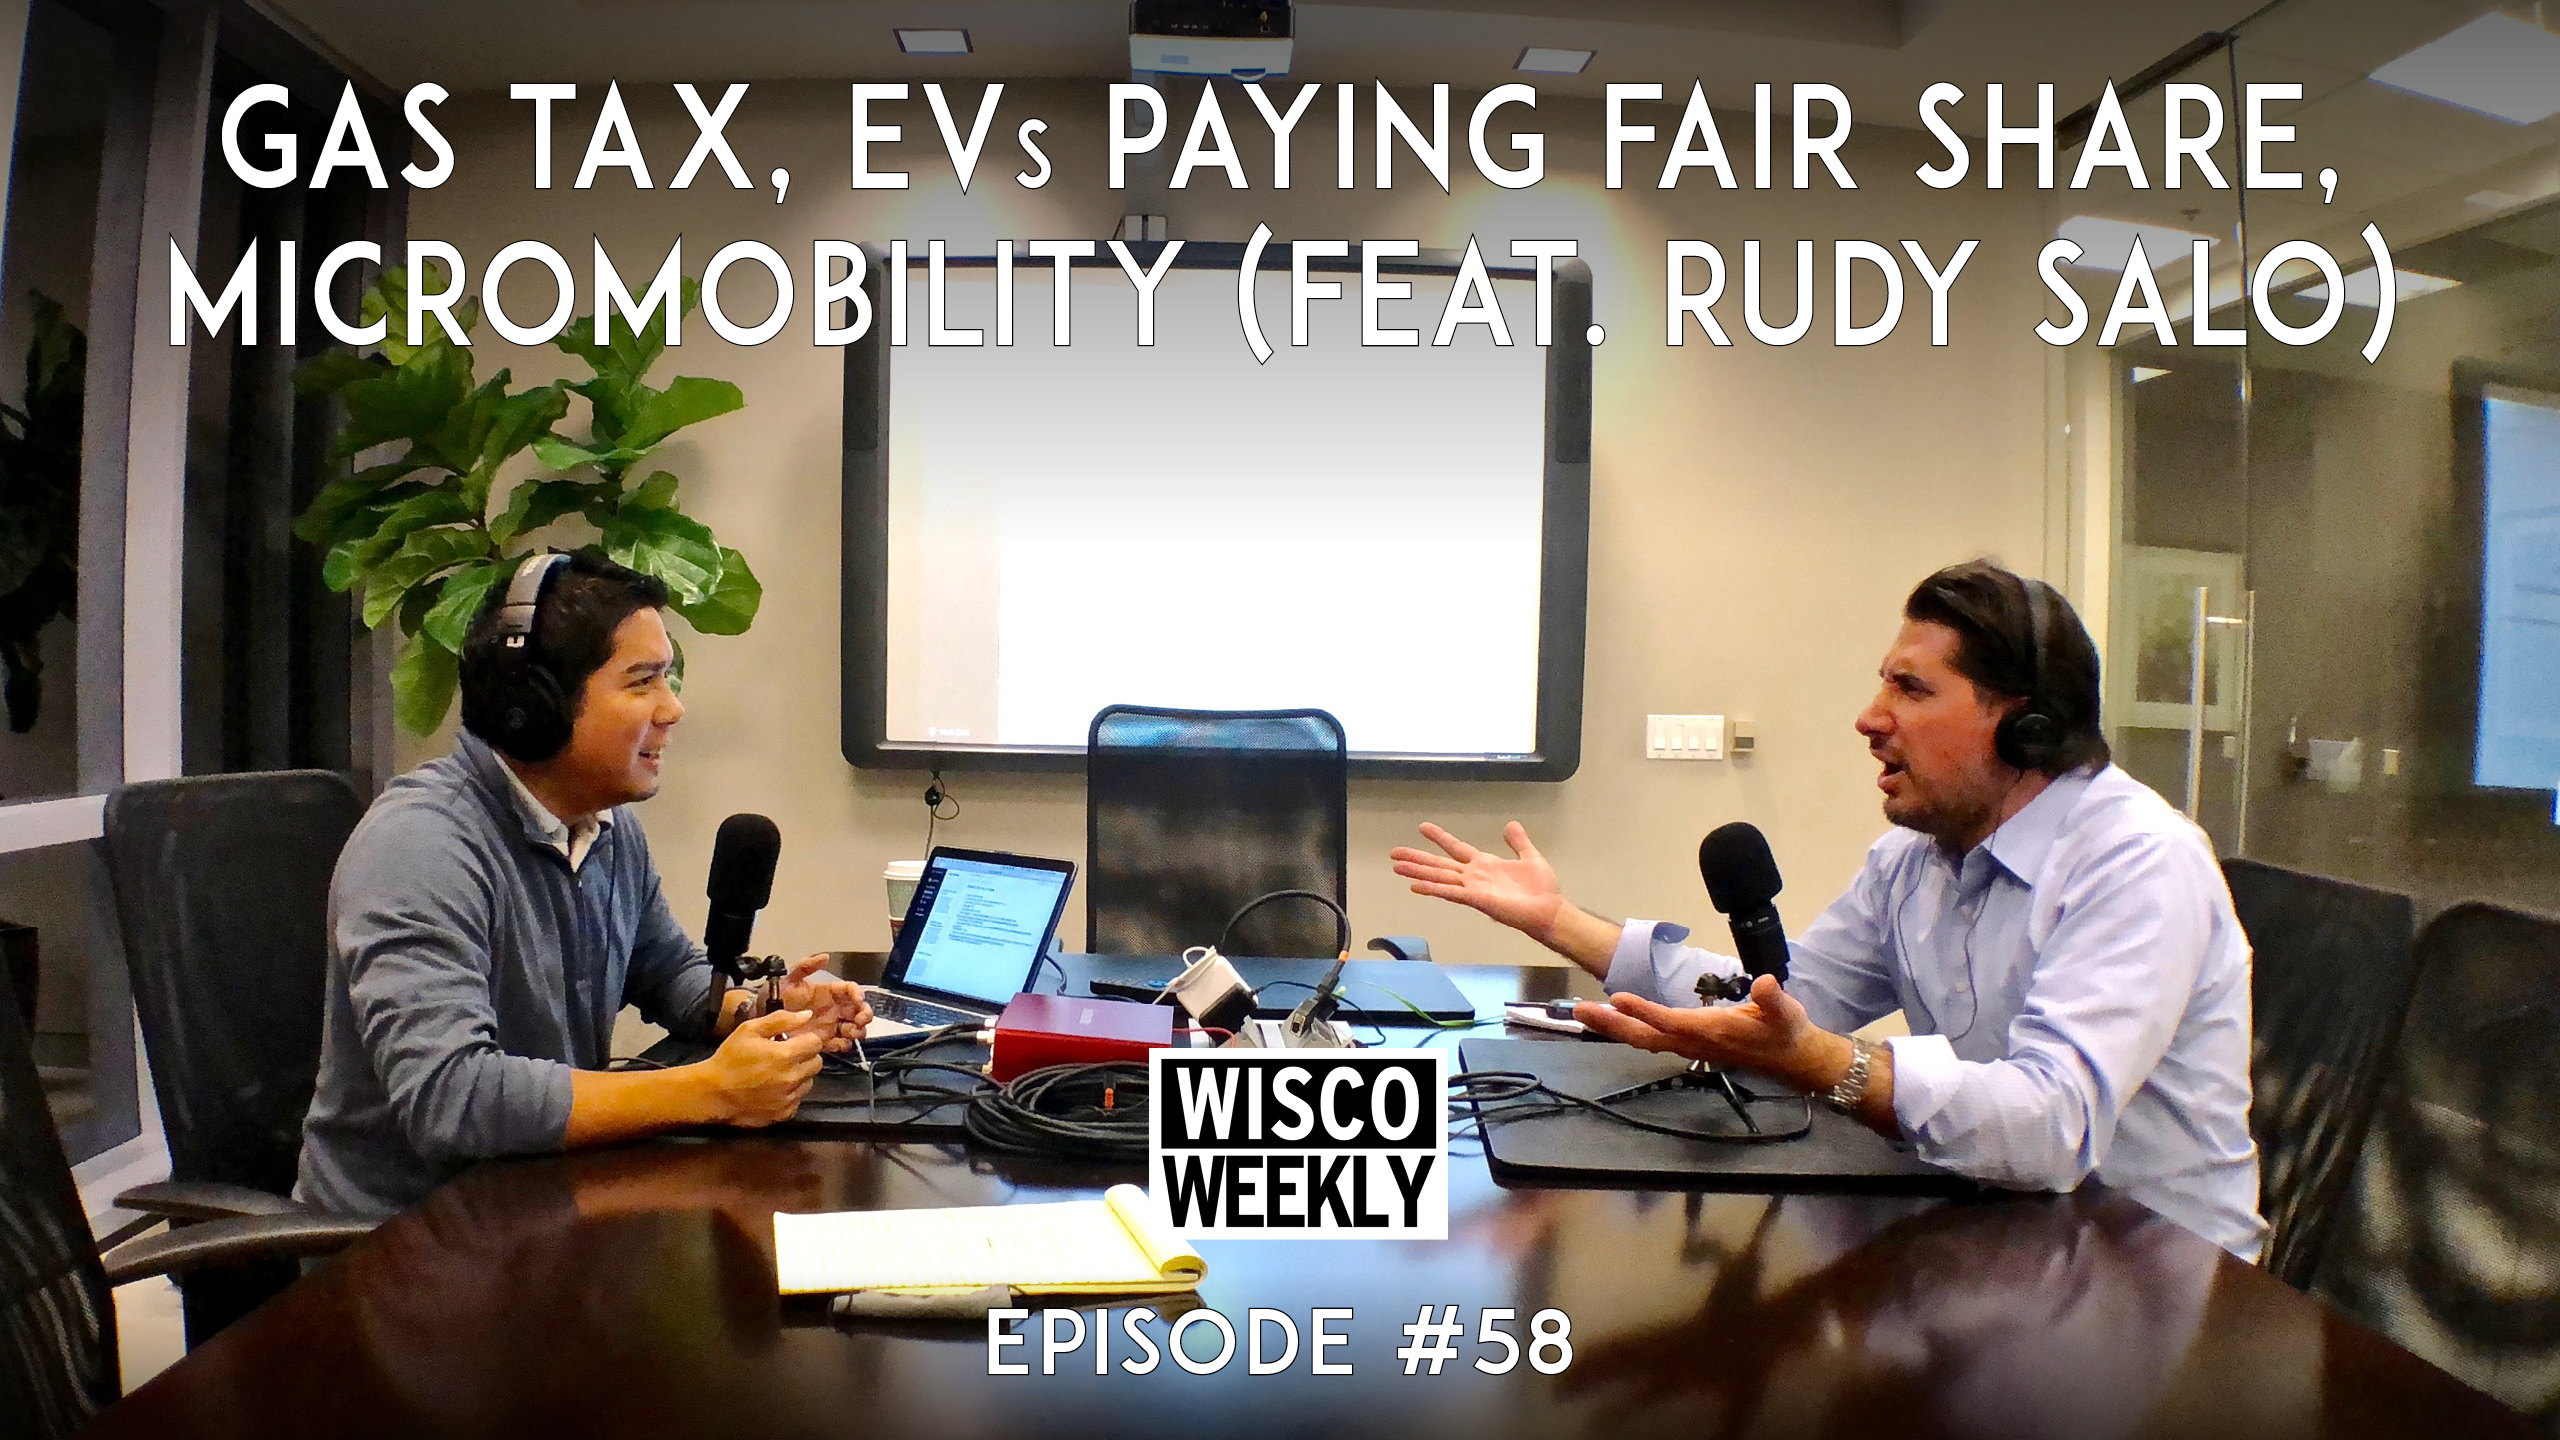 gas tax, evs, proposition 6, micromobility